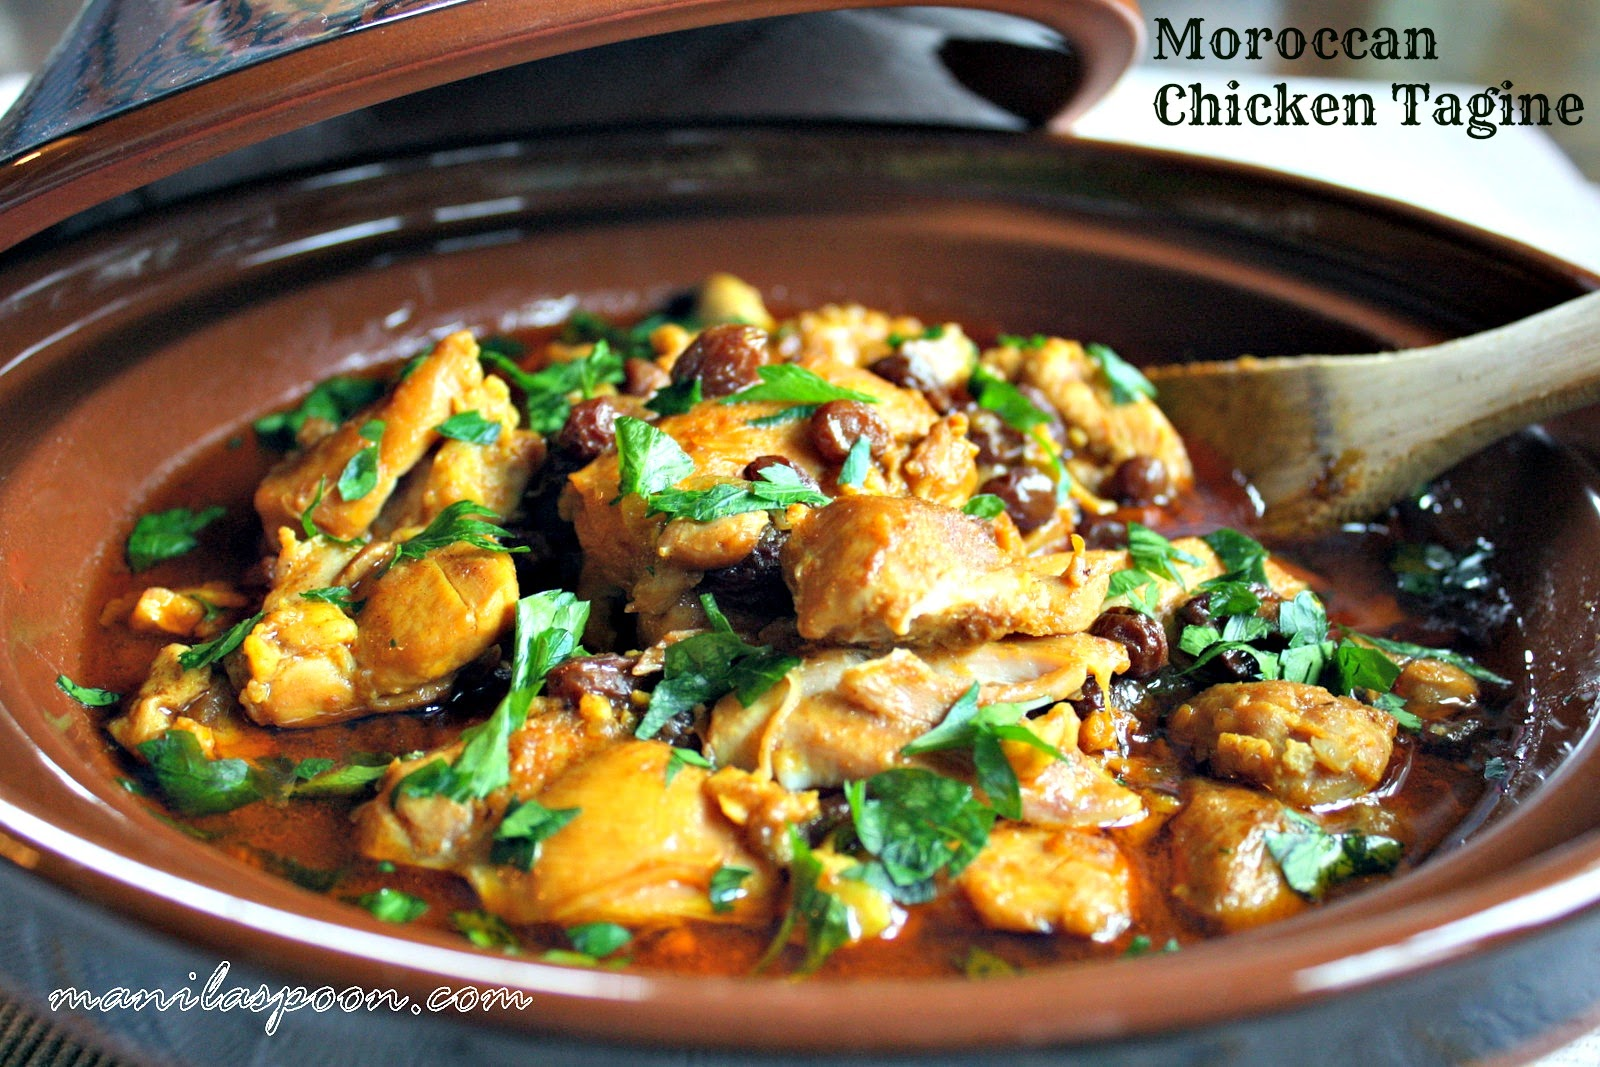 MOROCCAN CHICKEN TAGINE - flavored with tasty spices and fruits, it's simply delicious! Serve with rice.